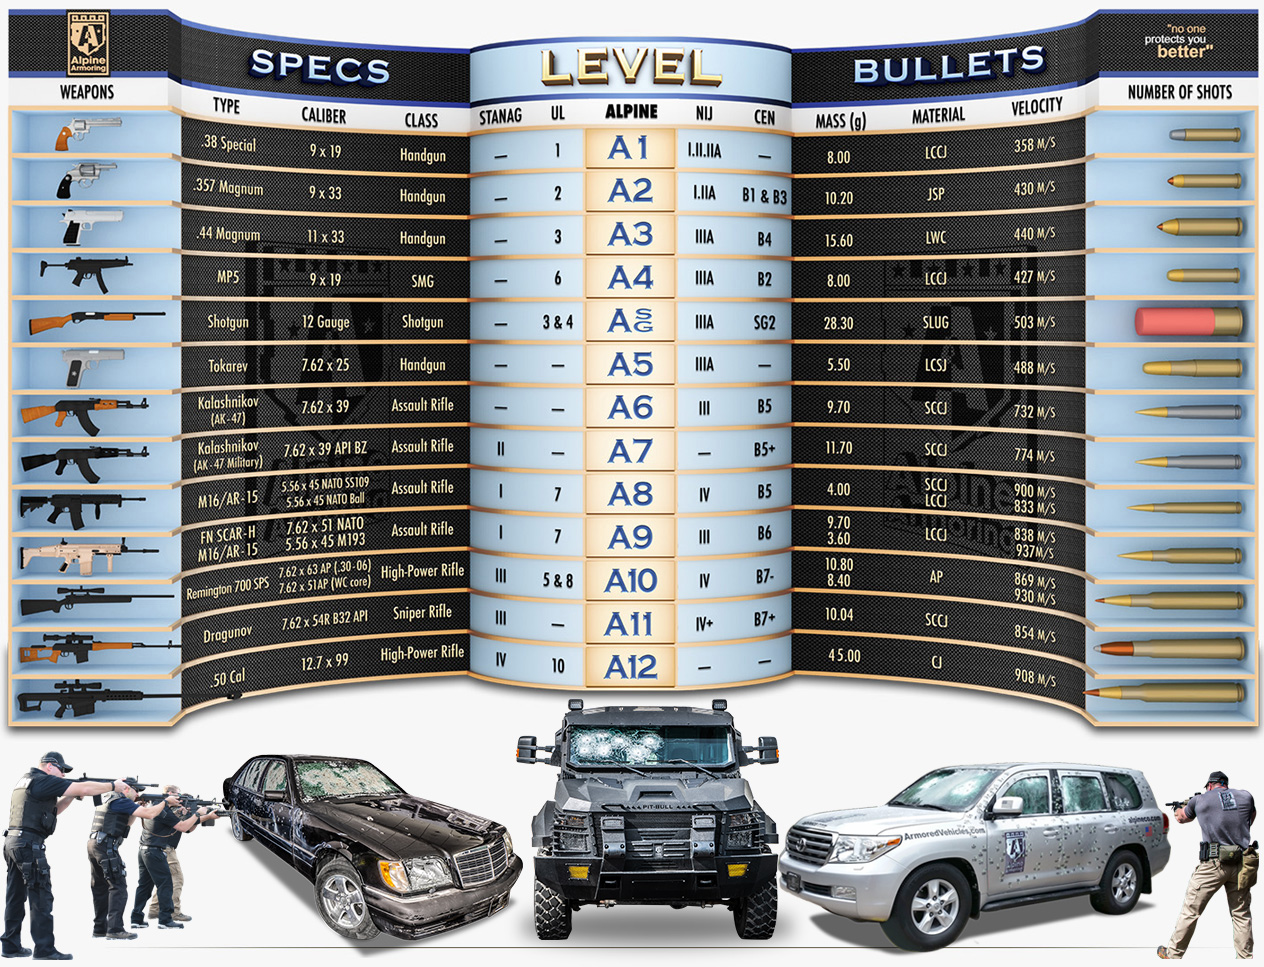 Alpine Armoring Ballistic chart listing a range of weapons with corresponding protection levels/ standards